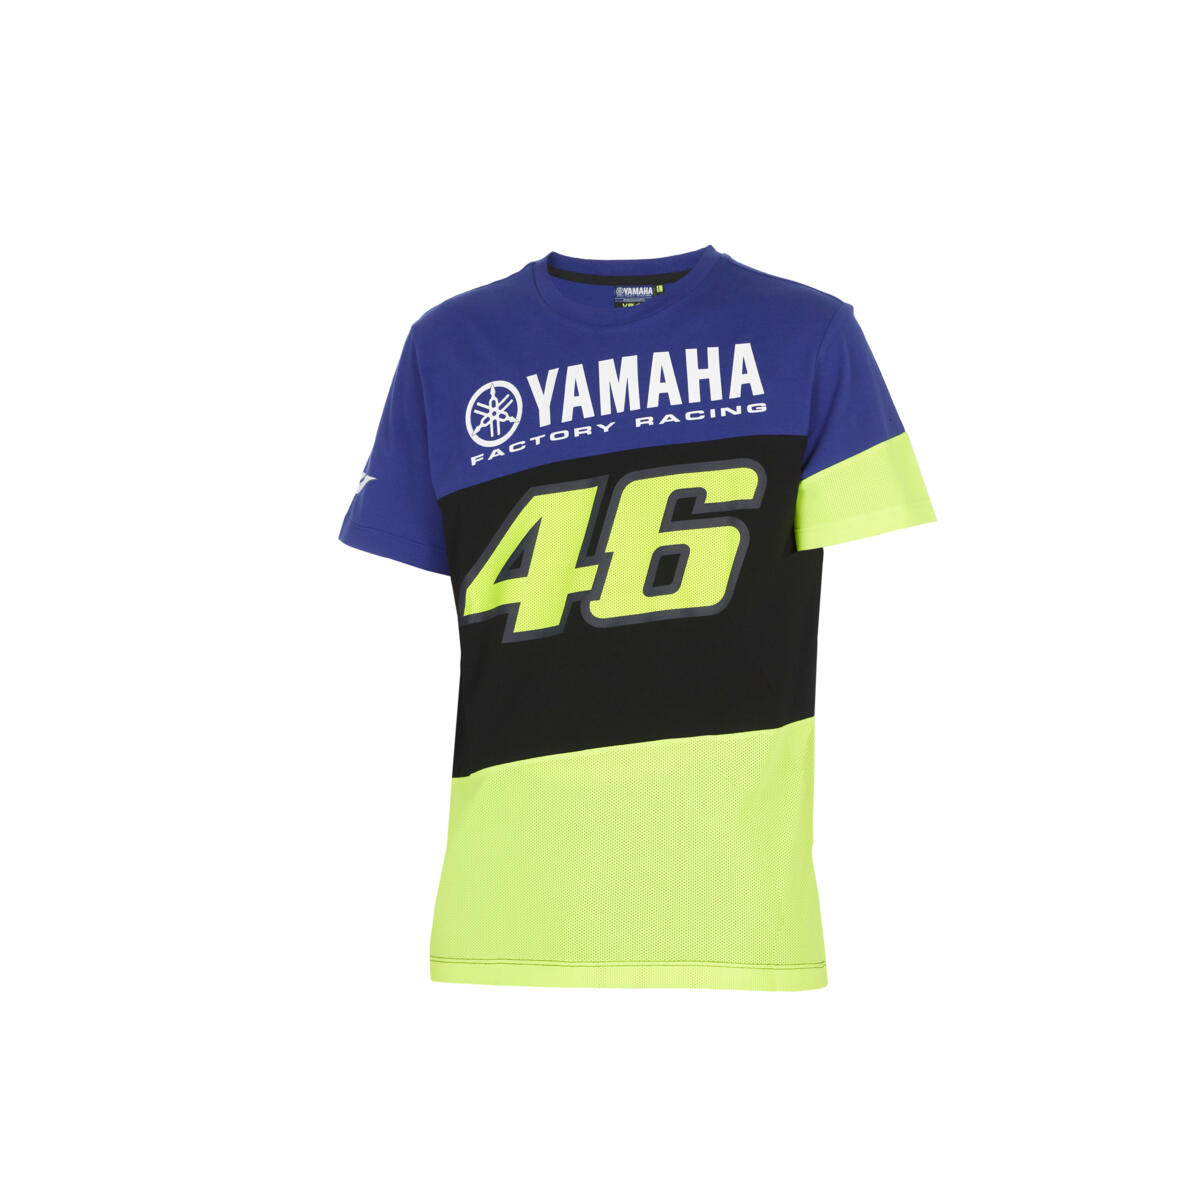 Yamaha VR46 Men's T-shirt